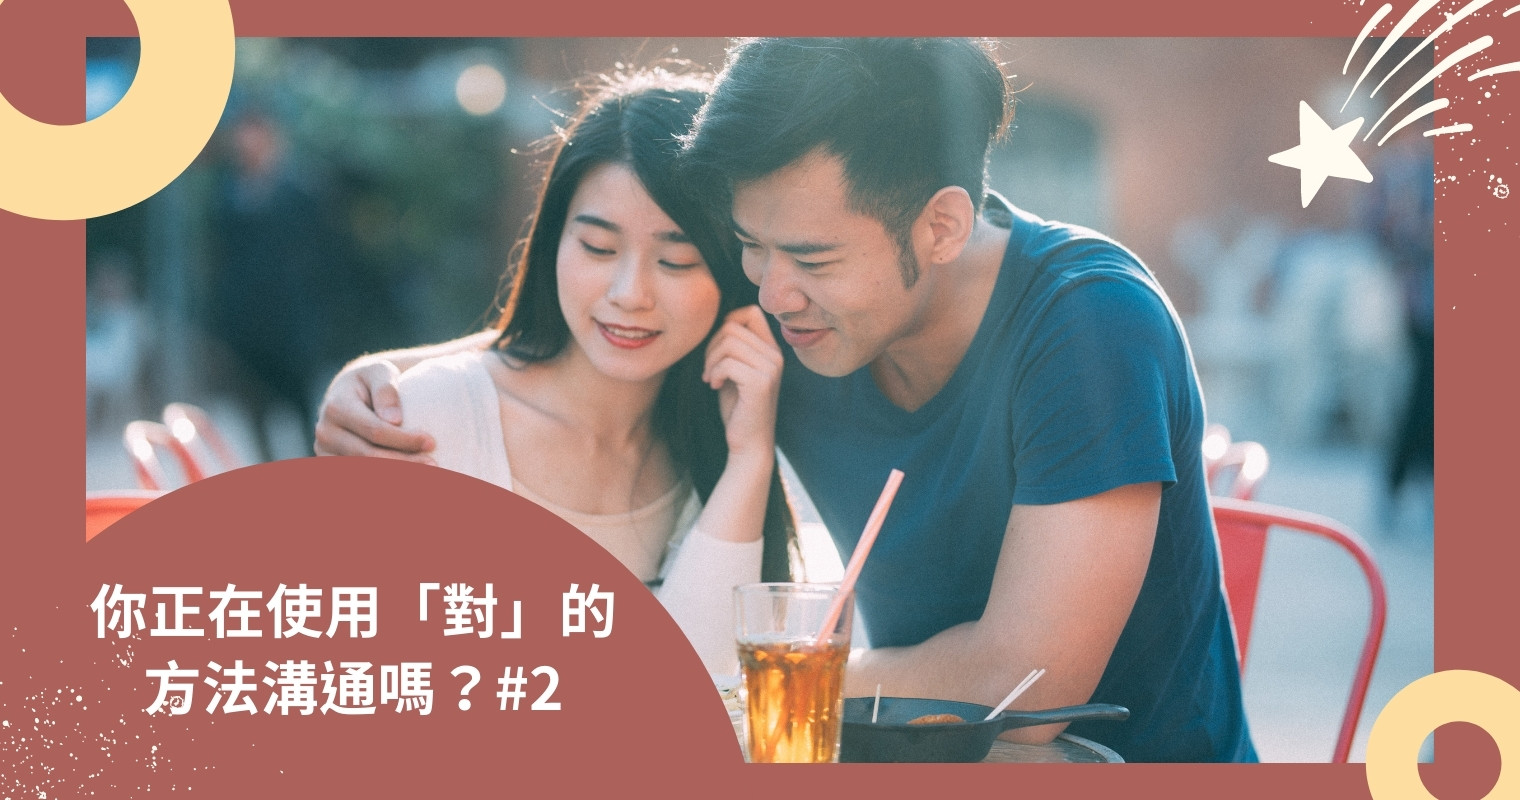 You are currently viewing 兩性關係 | 你正在使用「對」的方法溝通嗎?#2